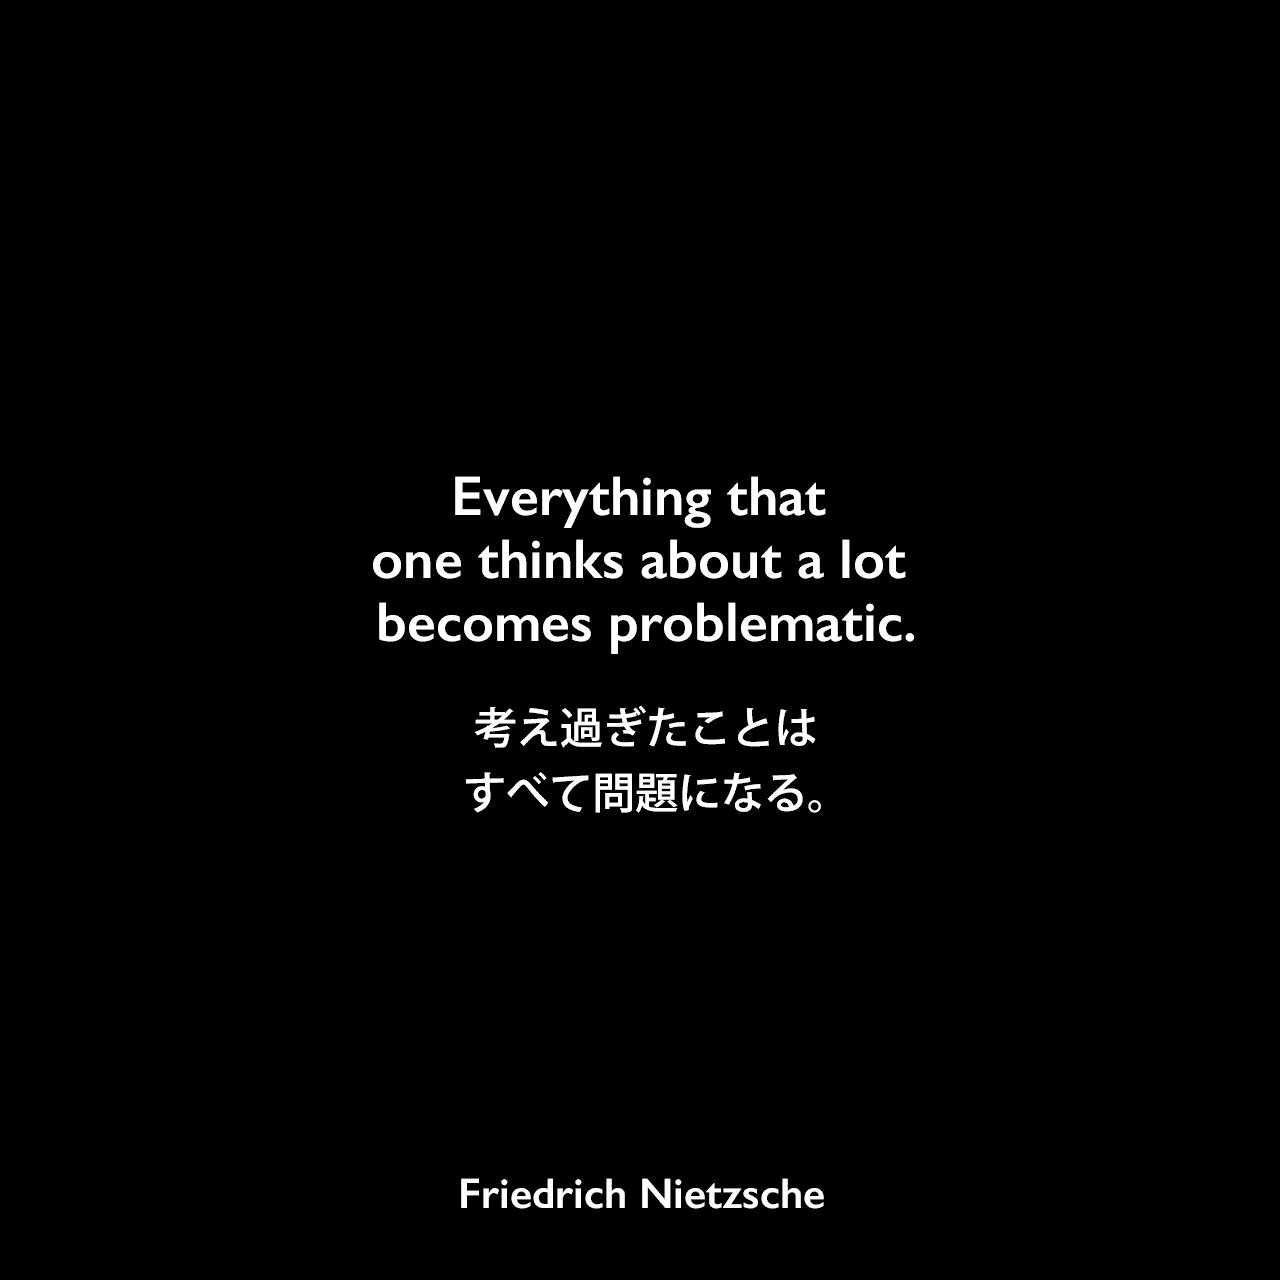 Everything that one thinks about a lot becomes problematic.考え過ぎたことはすべて問題になる。Friedrich Nietzsche